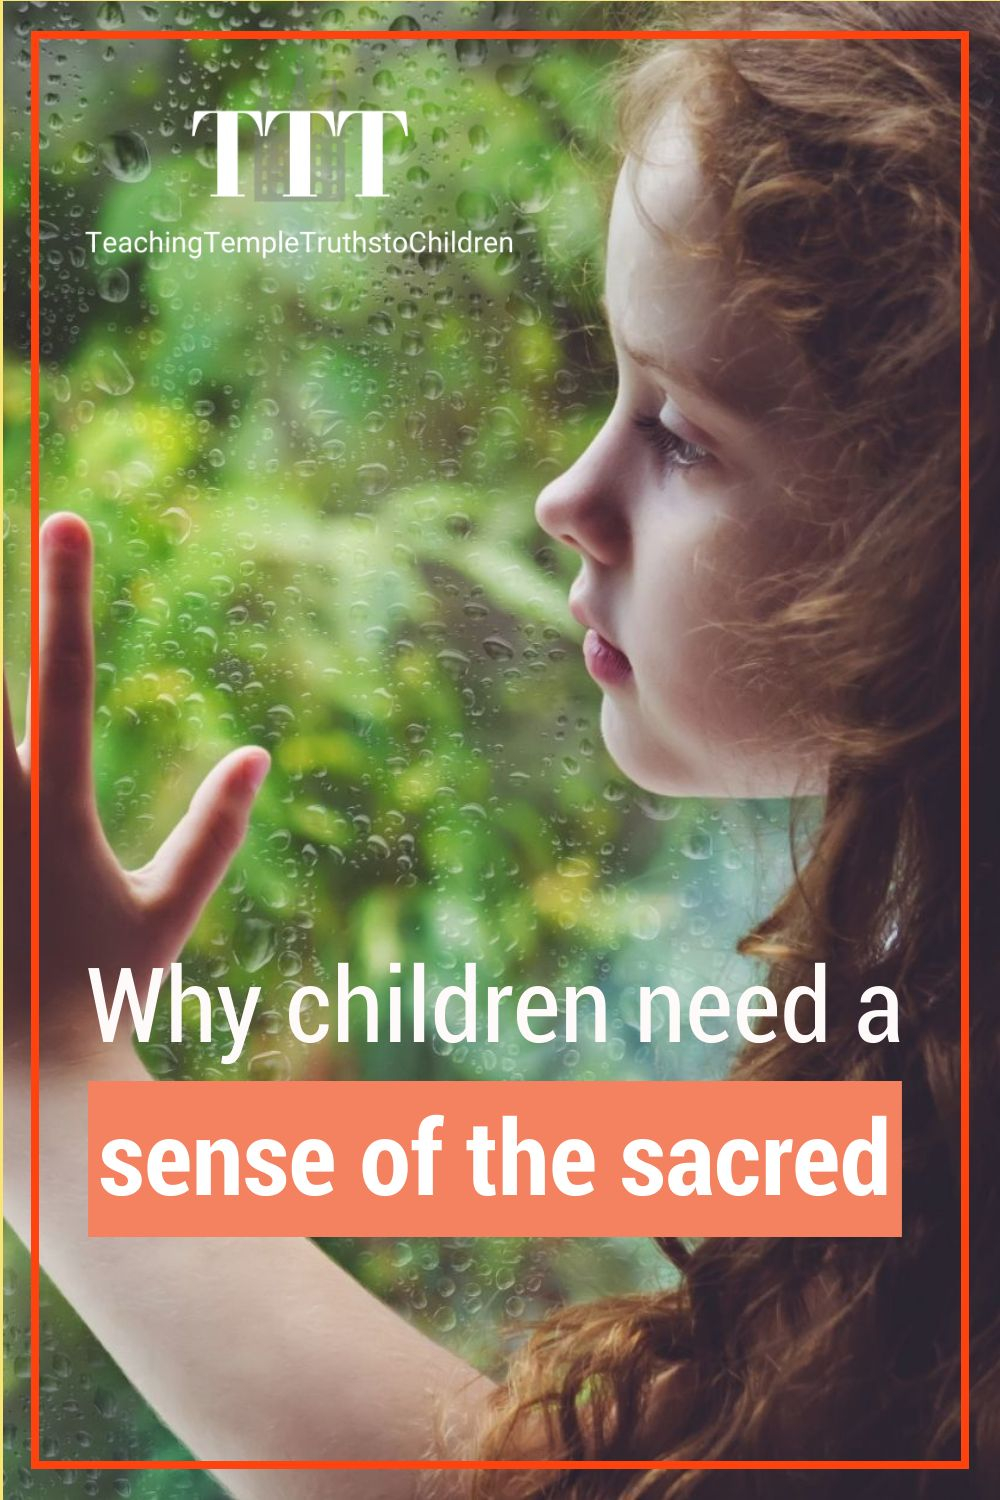 Why children need a sense of the sacred